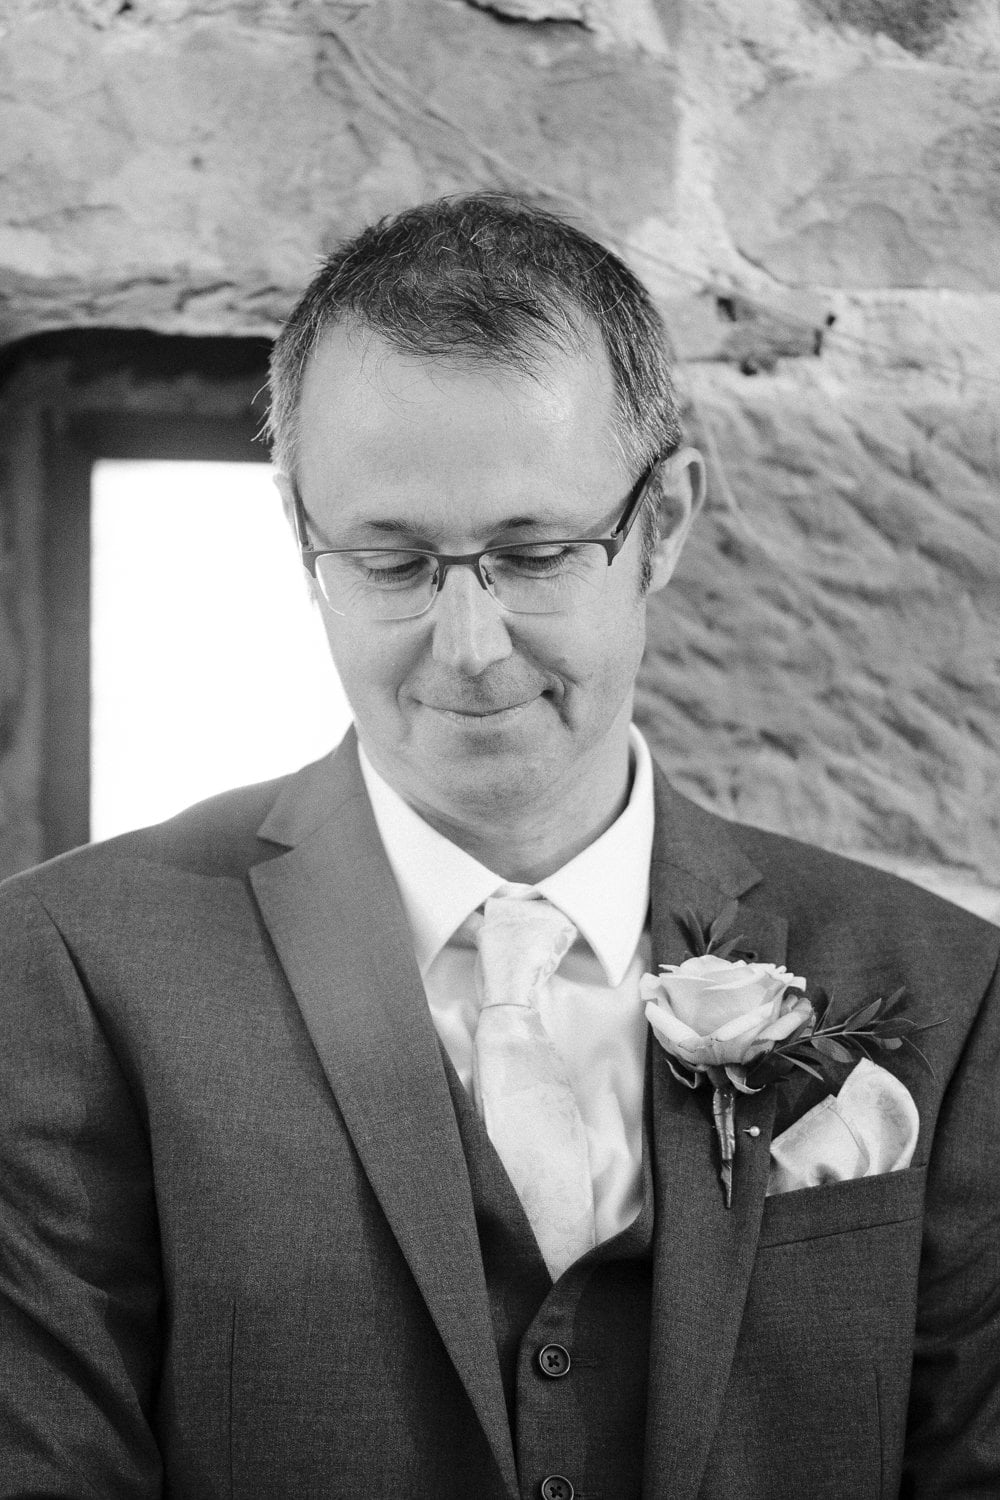 Father of the Bride Smiling Photography Portrait